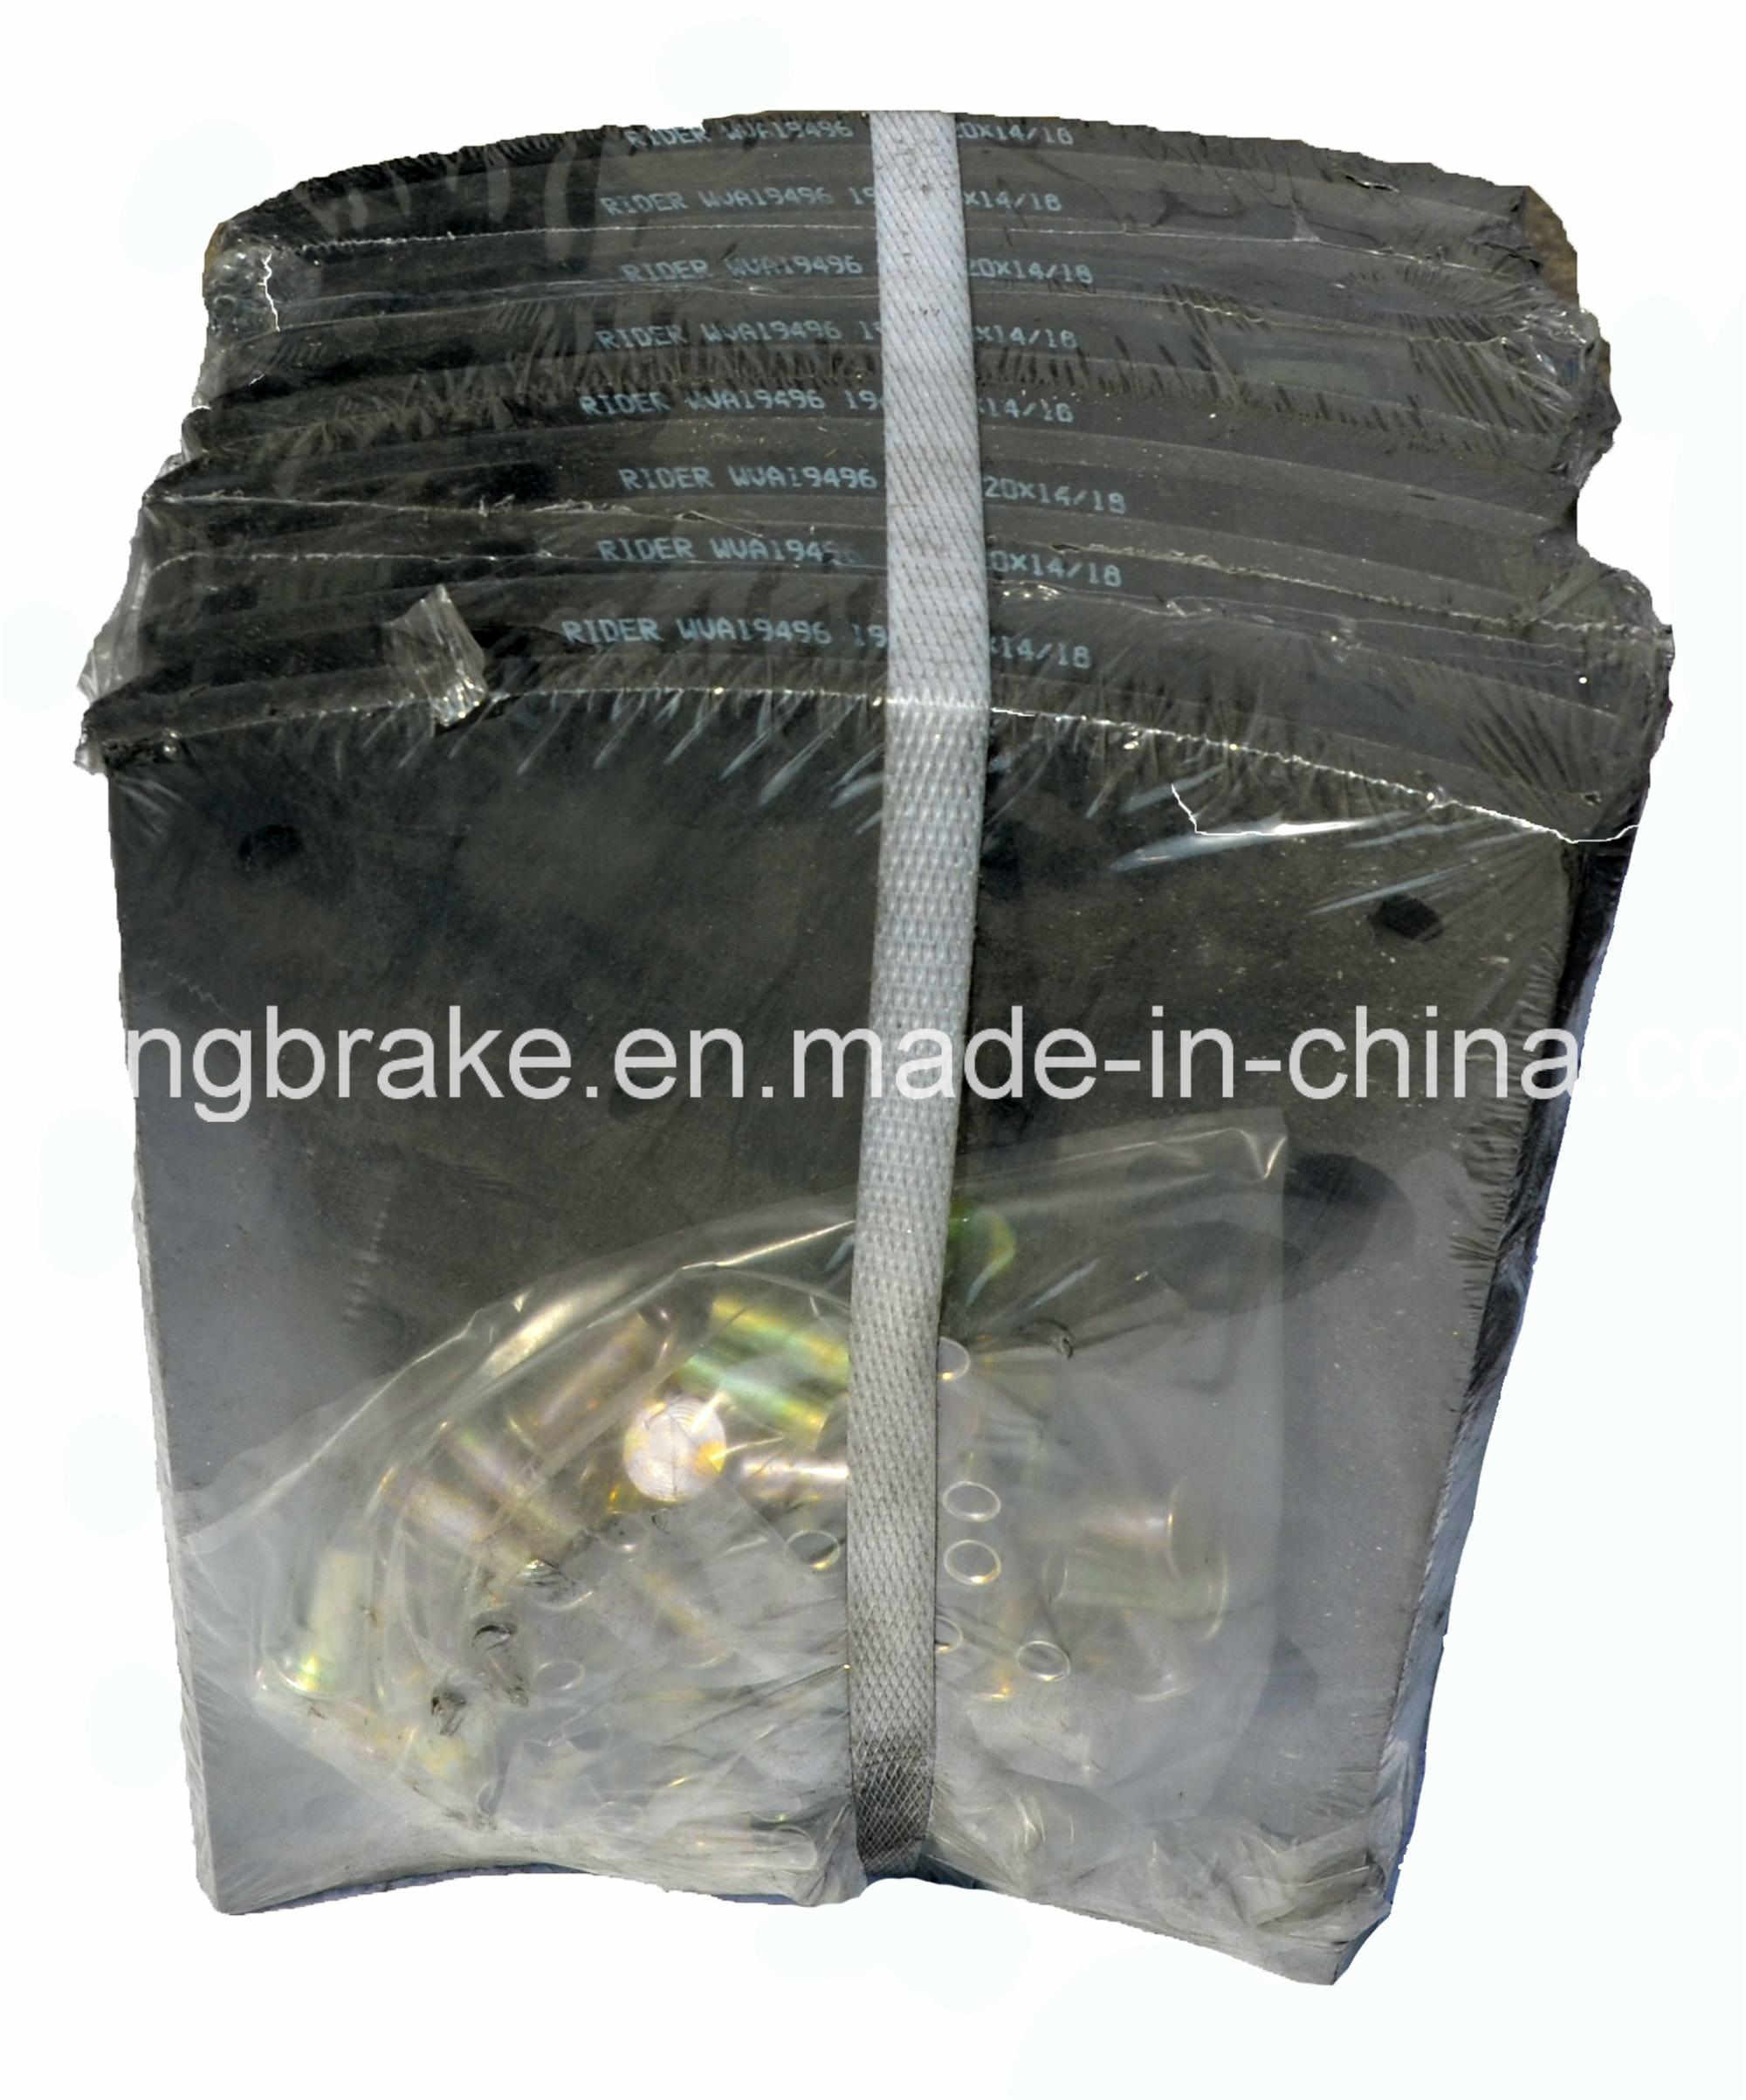 Brake Lining Asbestos Free Auto Spare Part (WVA: 19931 BFMC: SV/40/2) for European Truck